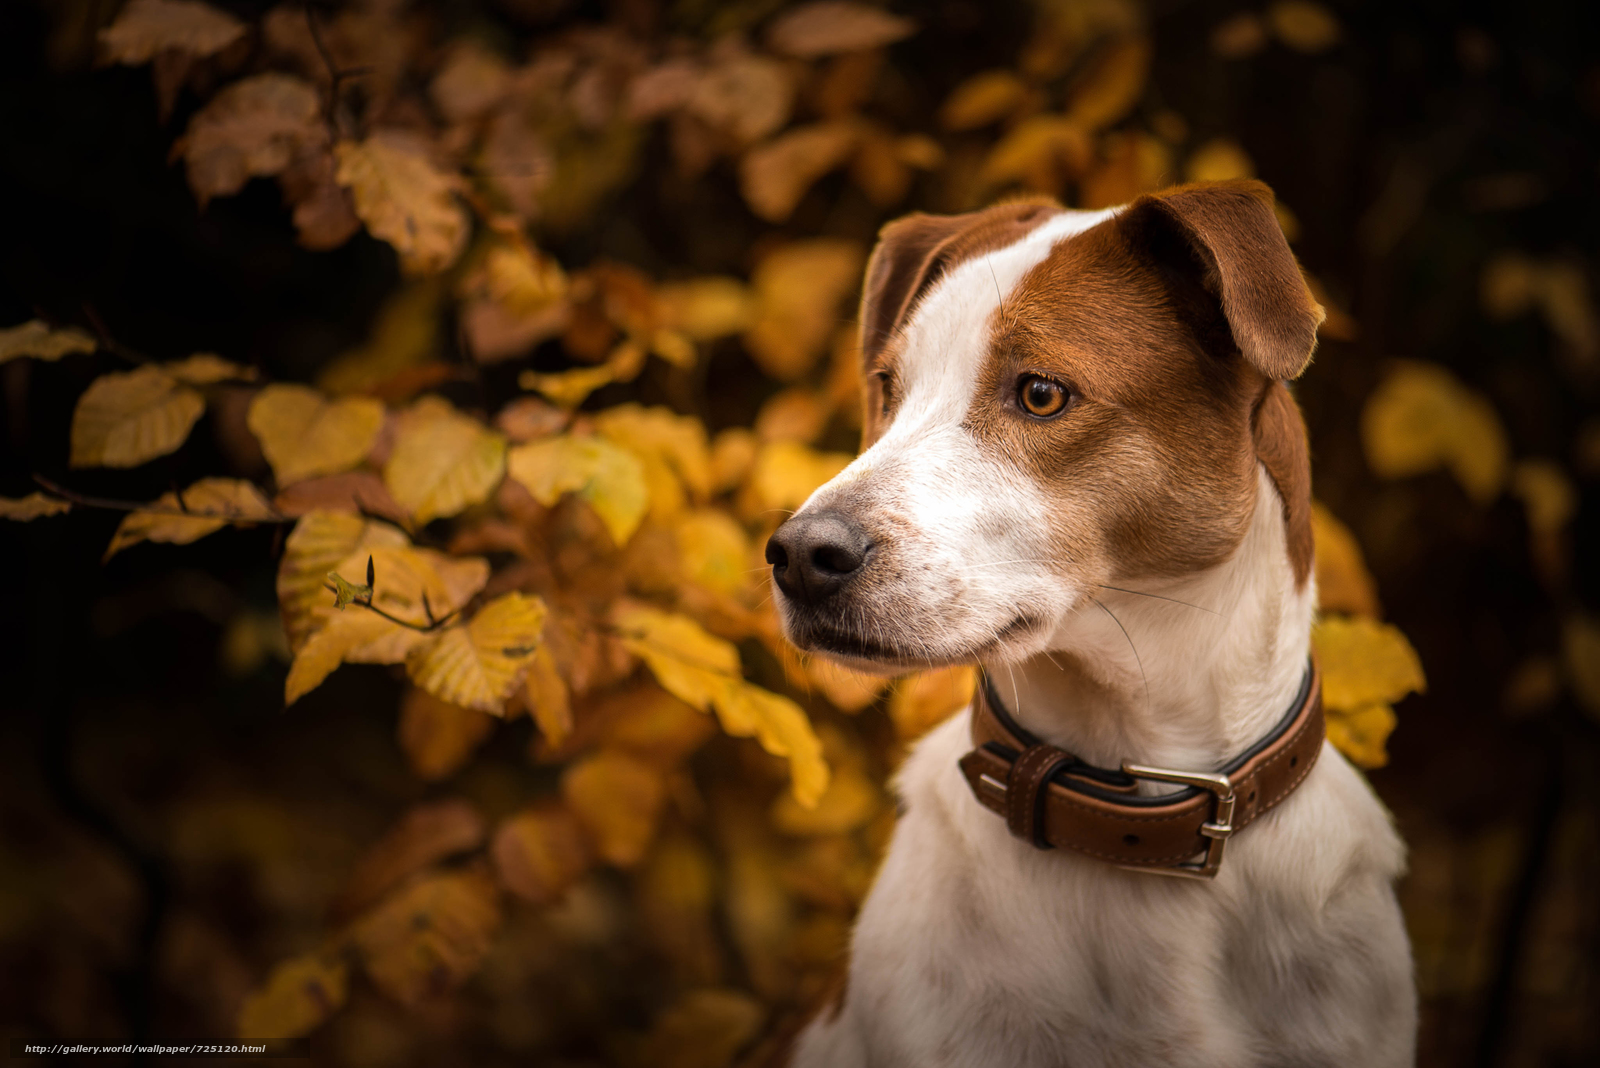 dog, muzzle, sight, collar, autumn, branches, leaves, portrait